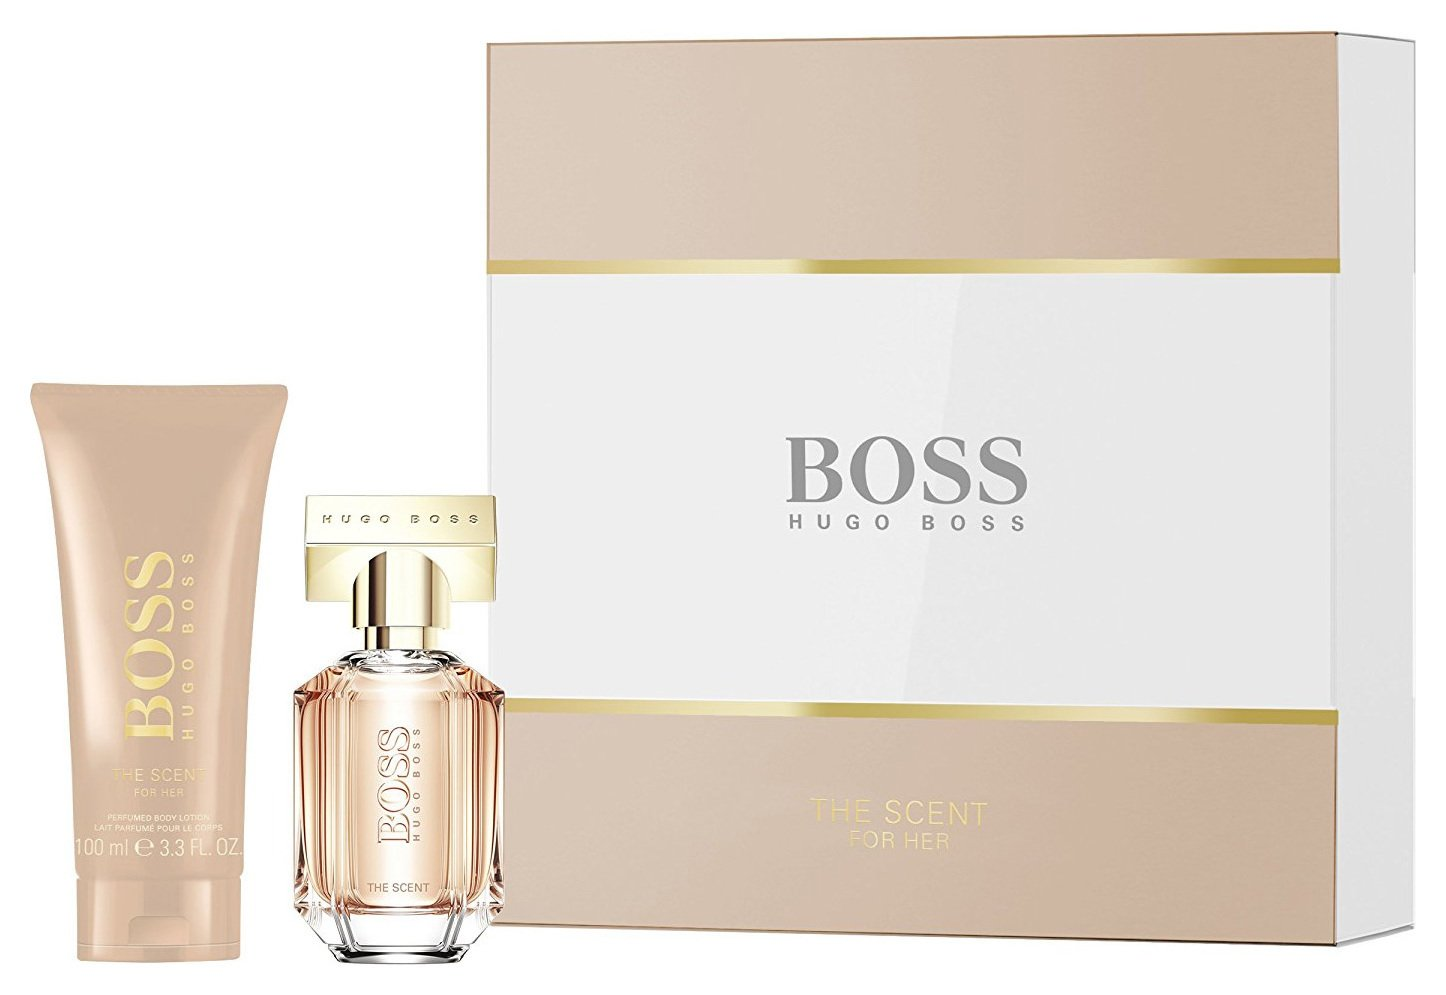 Hugo Boss The Scent for Women Eau de Parfum Gift Set - 30ml